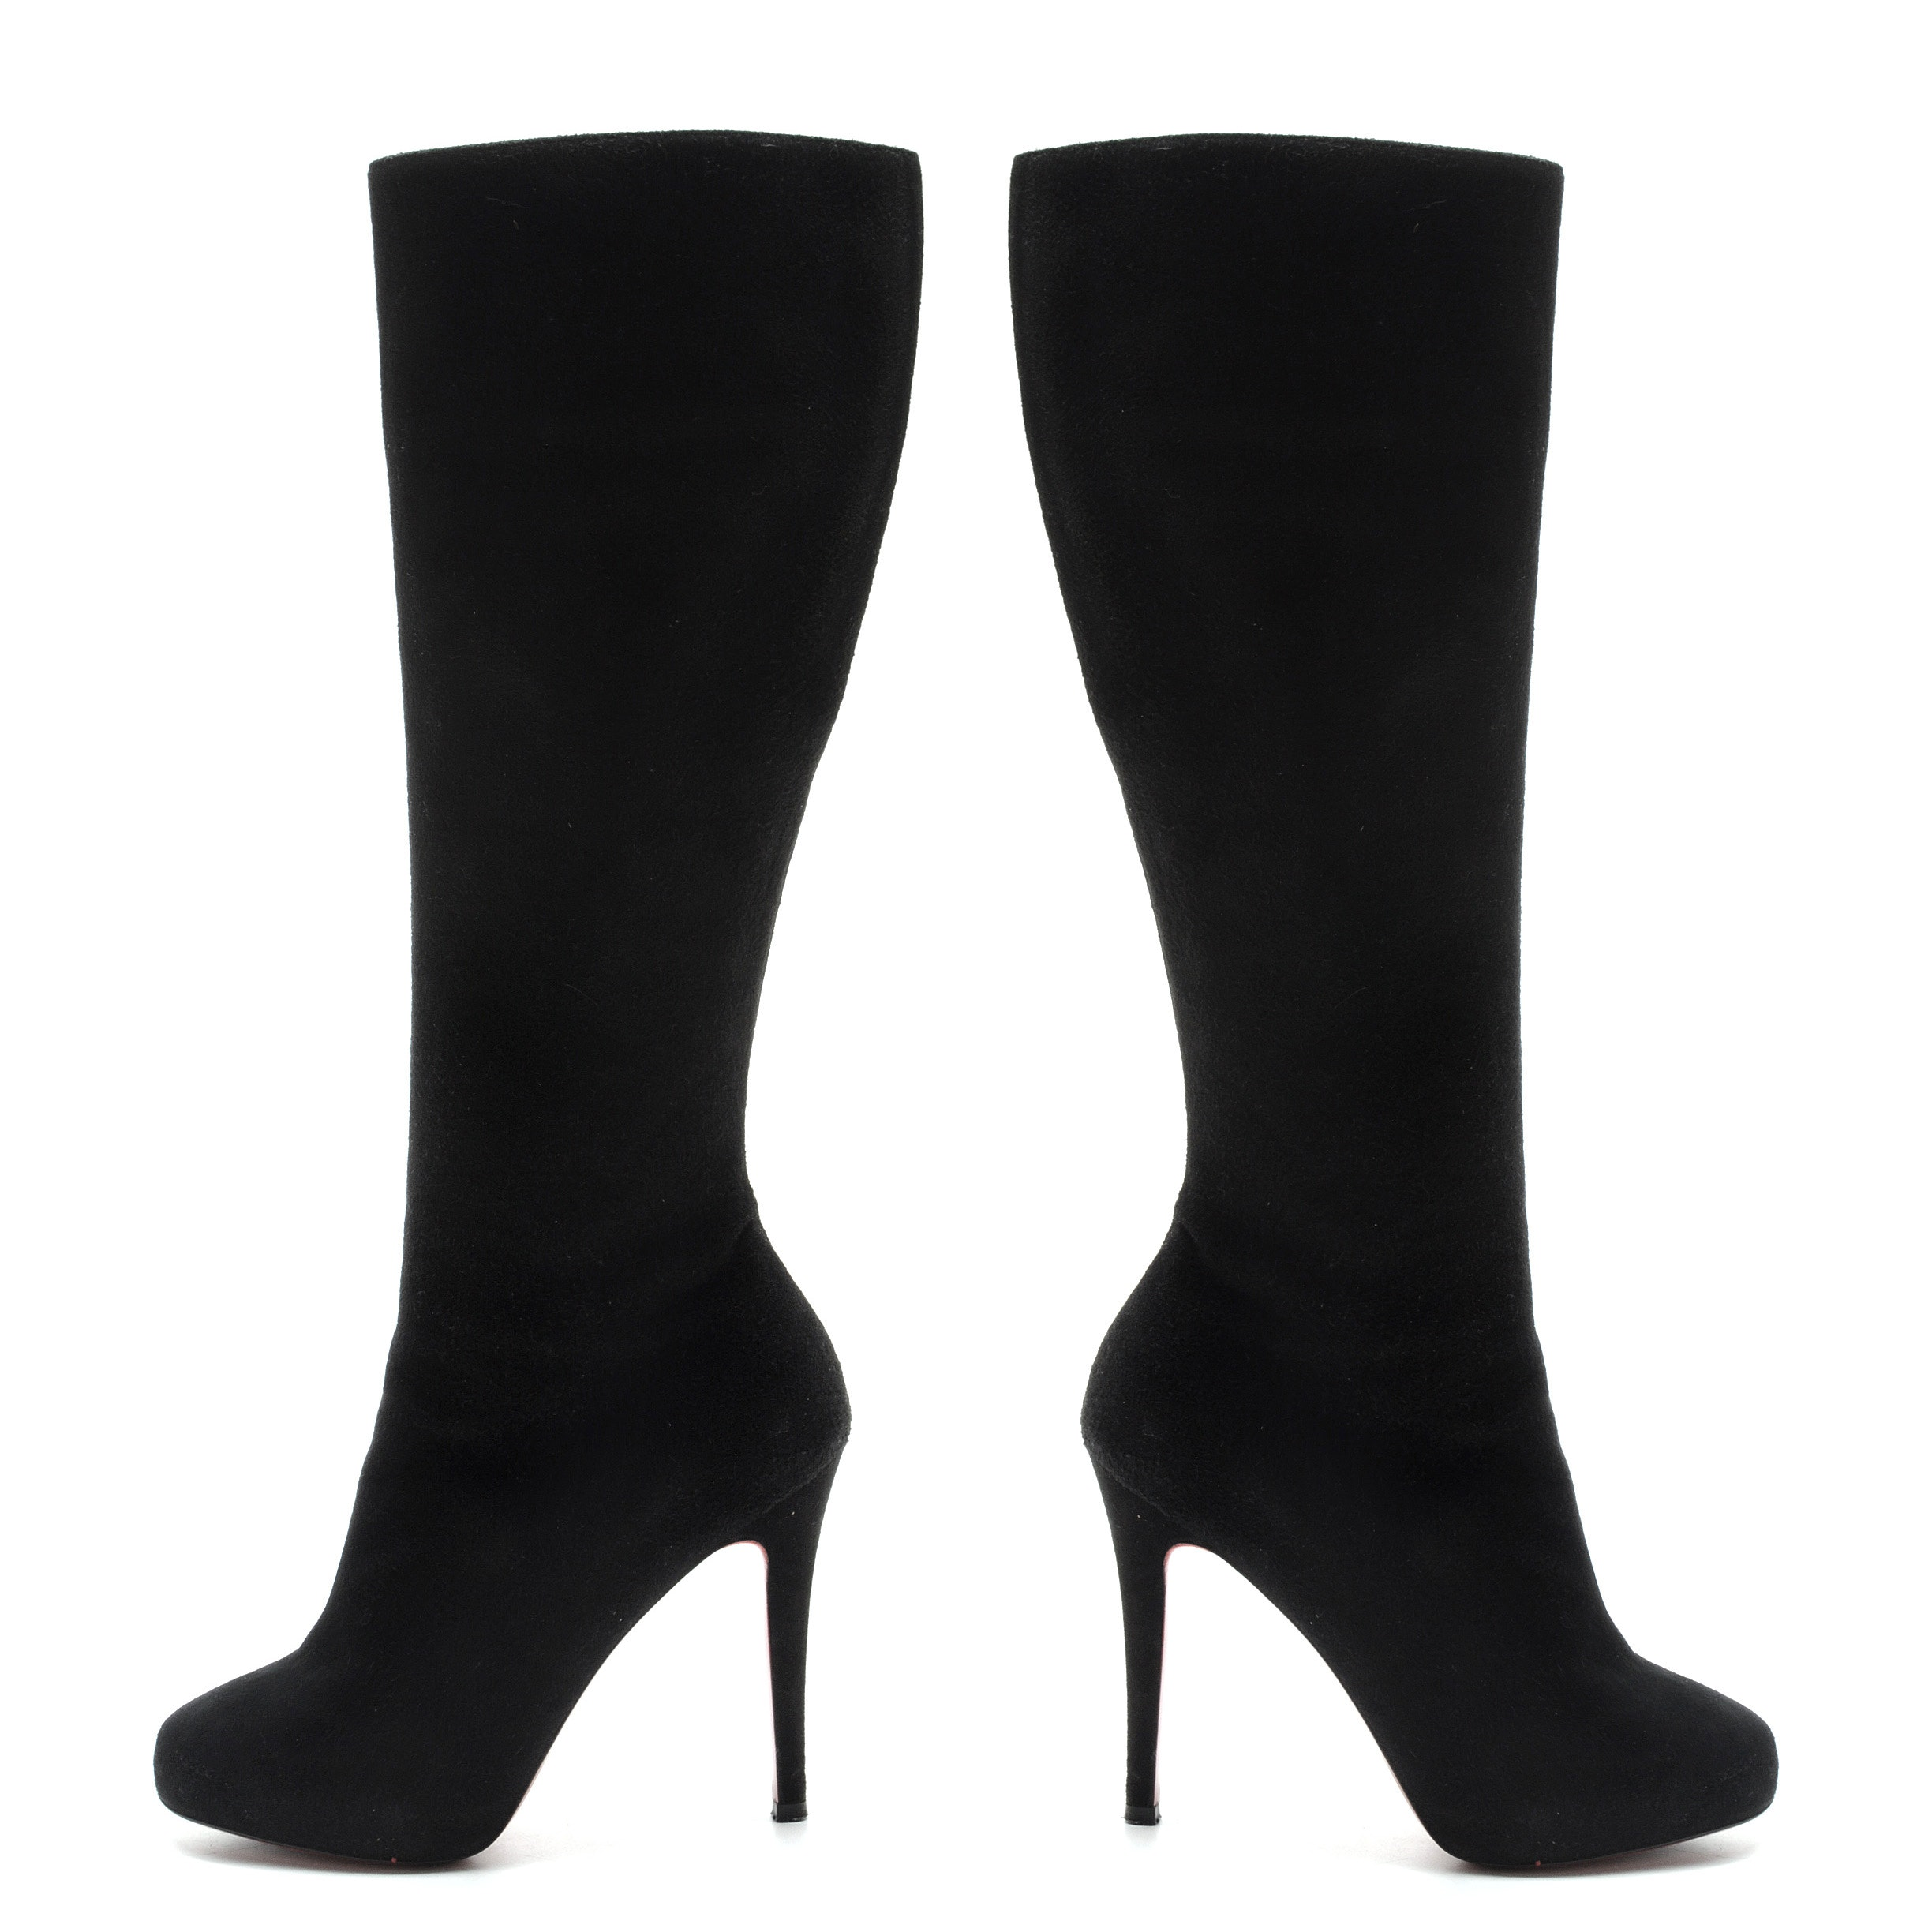 Pair of Christian Louboutin Black Suede Leather Below-The-Knee Zip-Up Boots